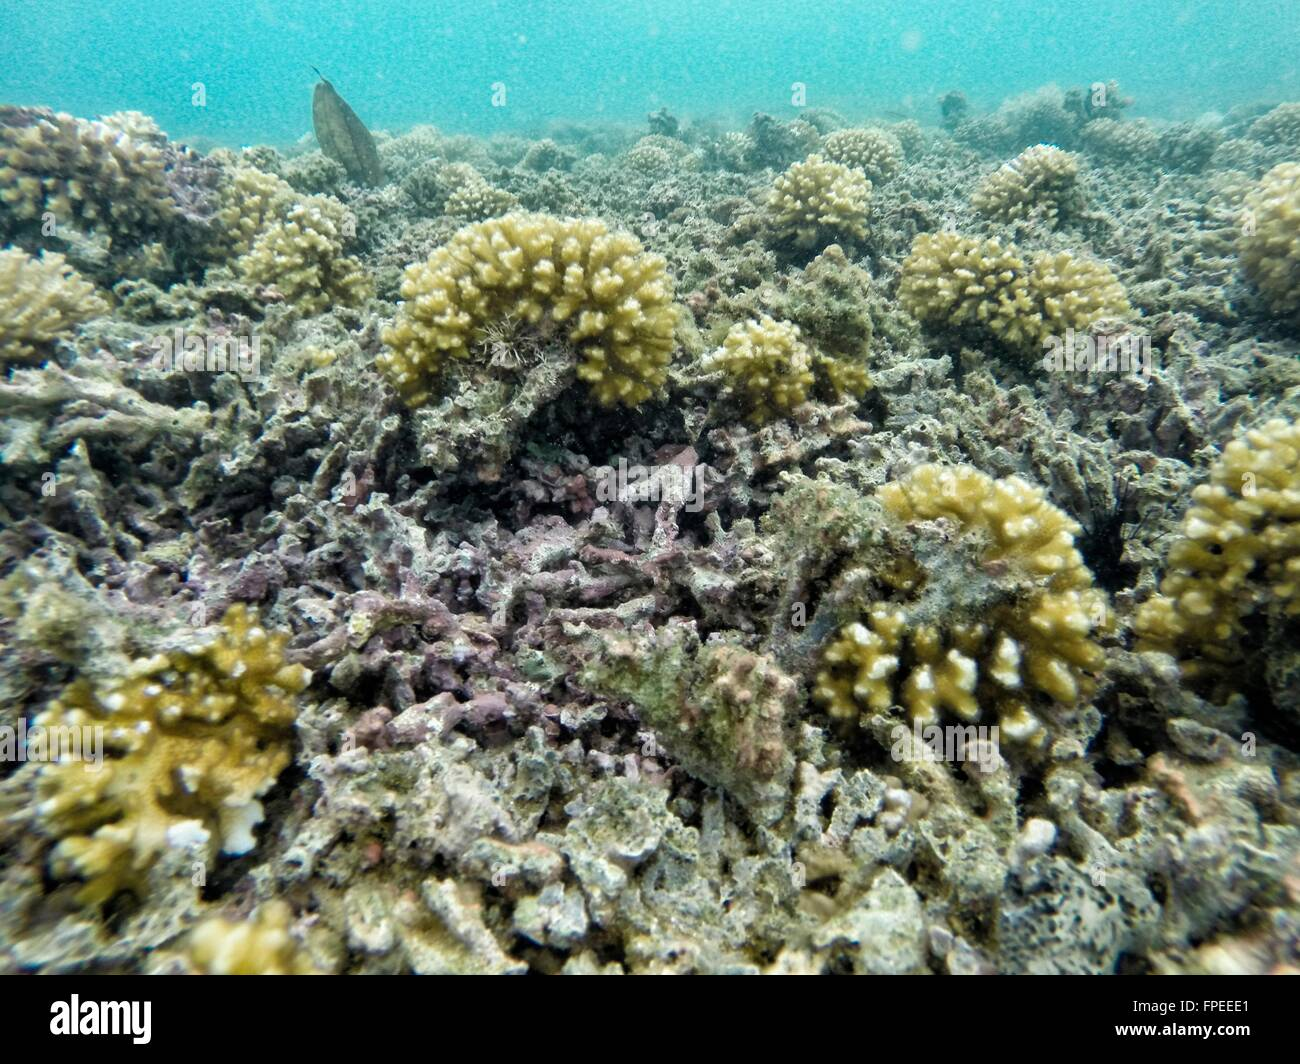 Unhealthy coral reef with multiple broken hard corals - Stock Image